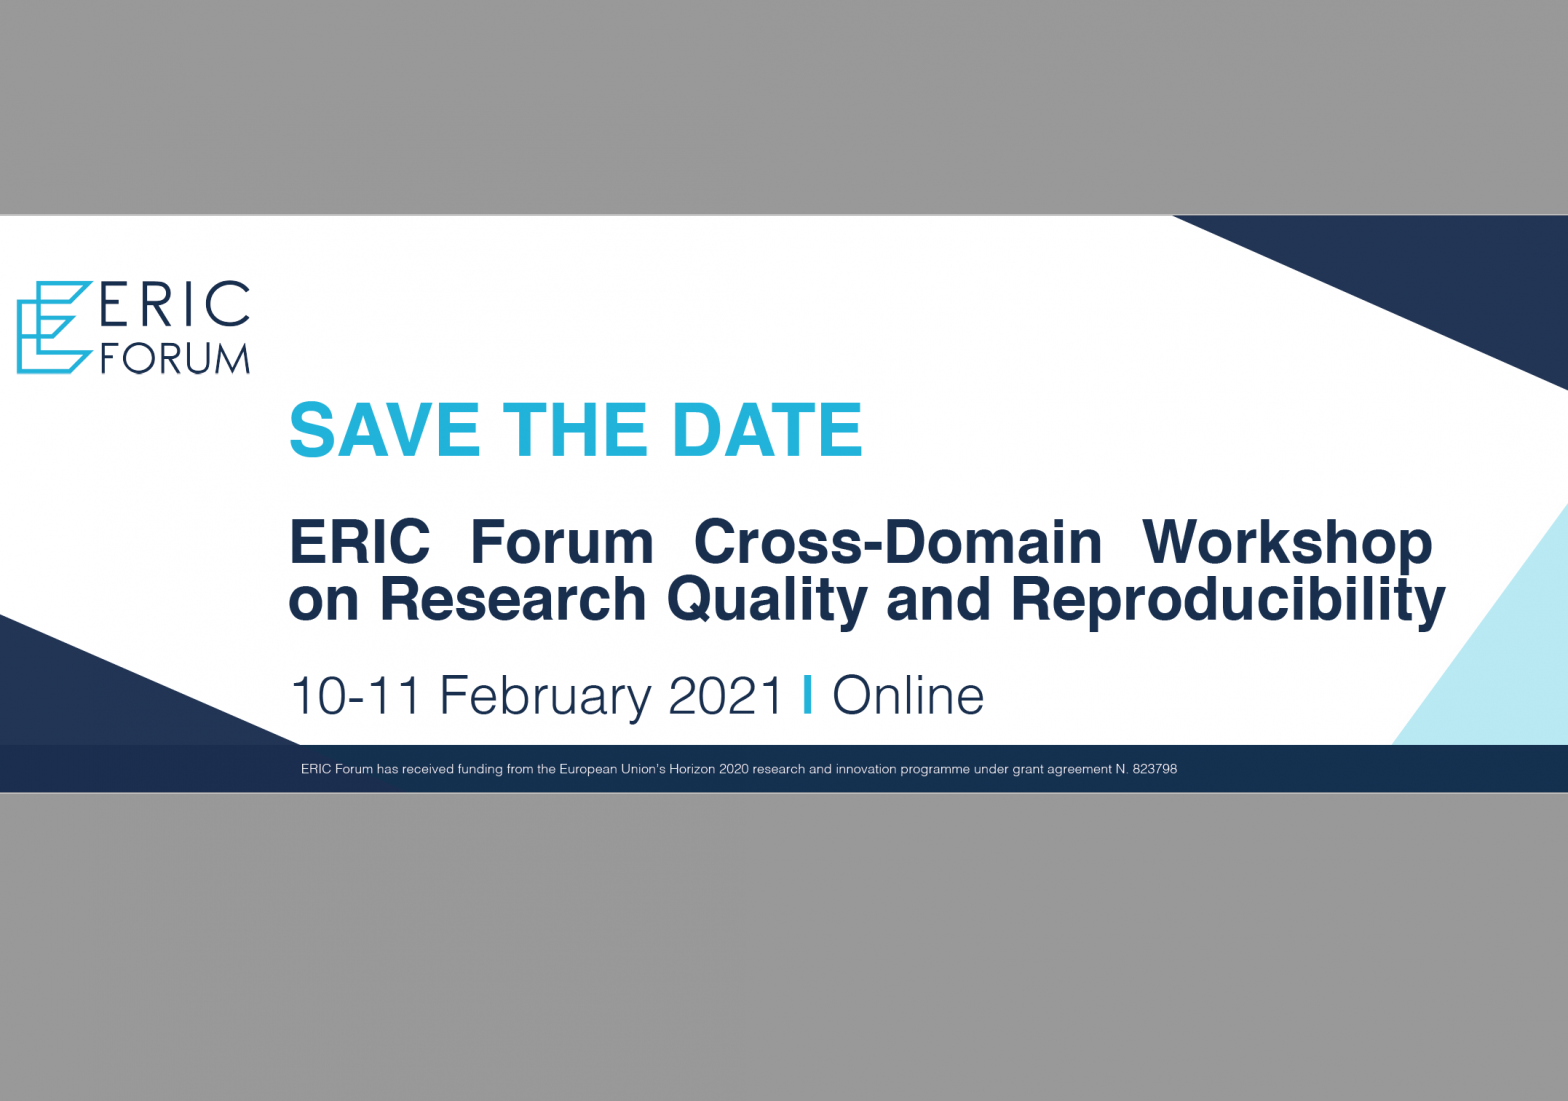 ERIC Forum Cross-Domain Workshop on Research Quality and Reproducibility